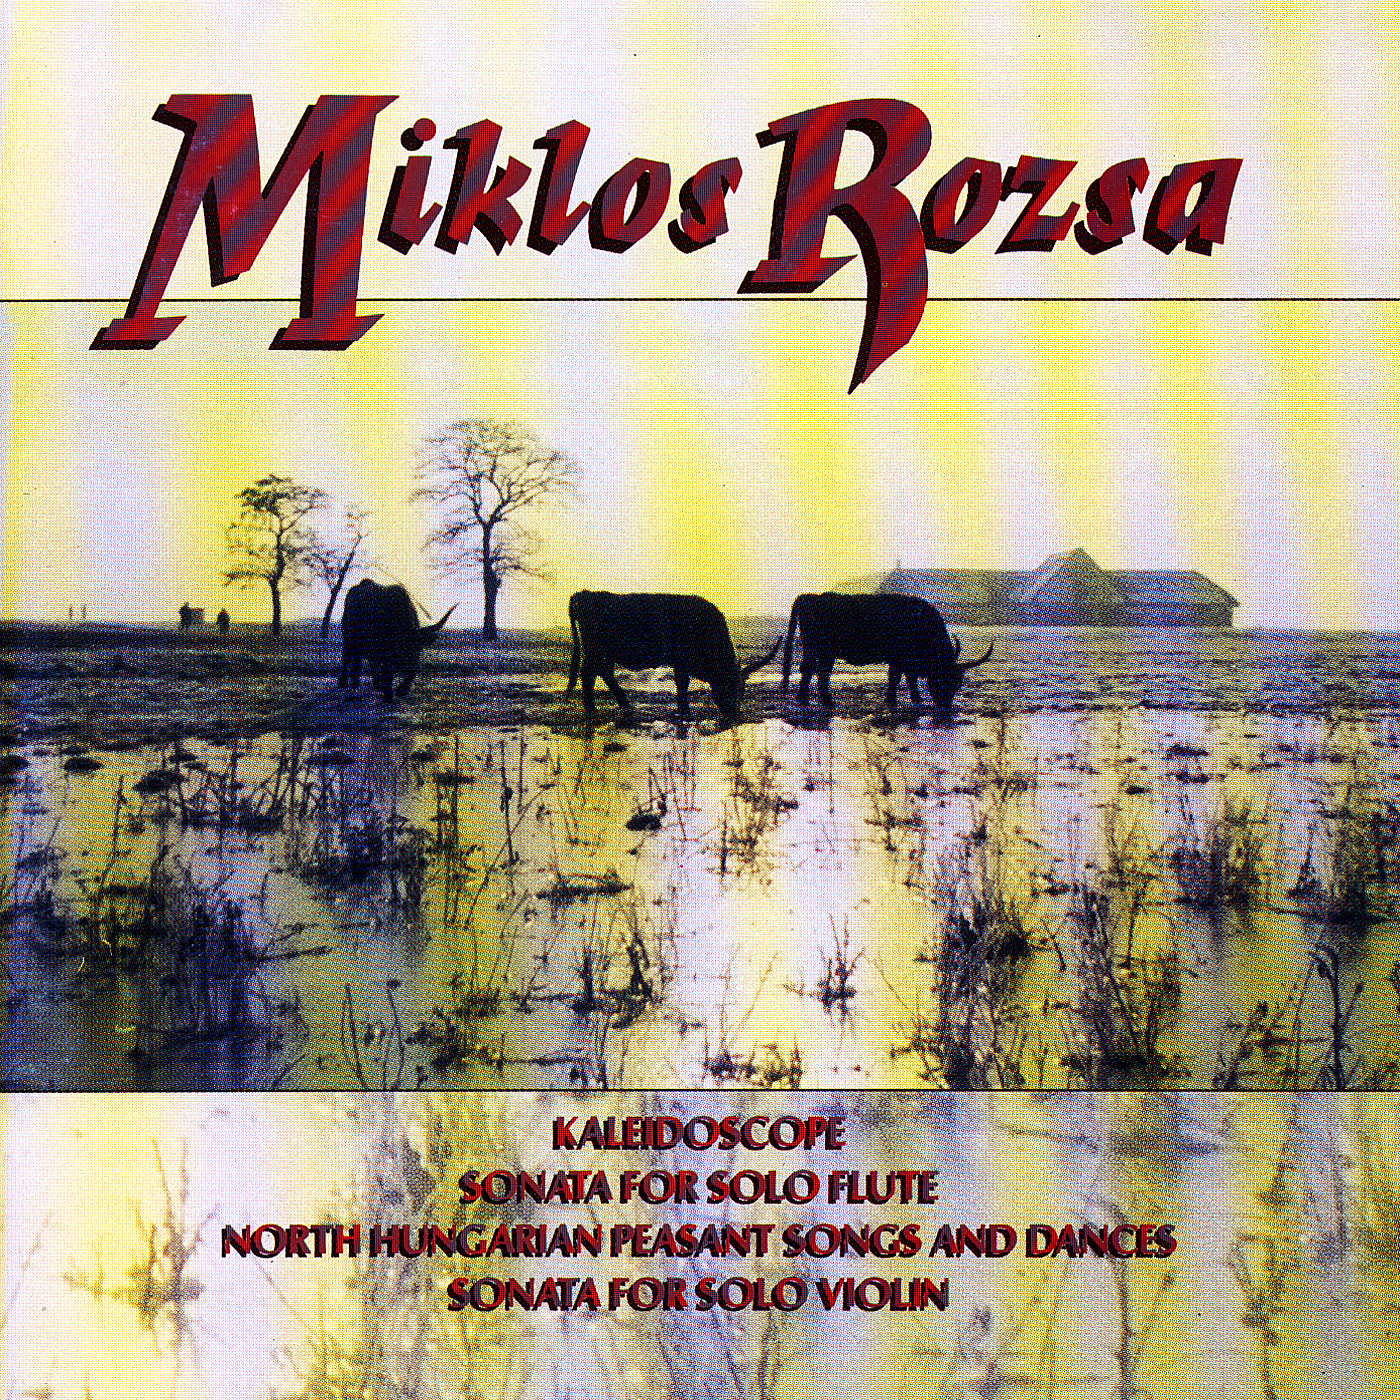 Rozsa: Kaleidoscope, Sonata for Solo Flute, North Hungarian Peasant Songs and Dances, Sonata for Sol